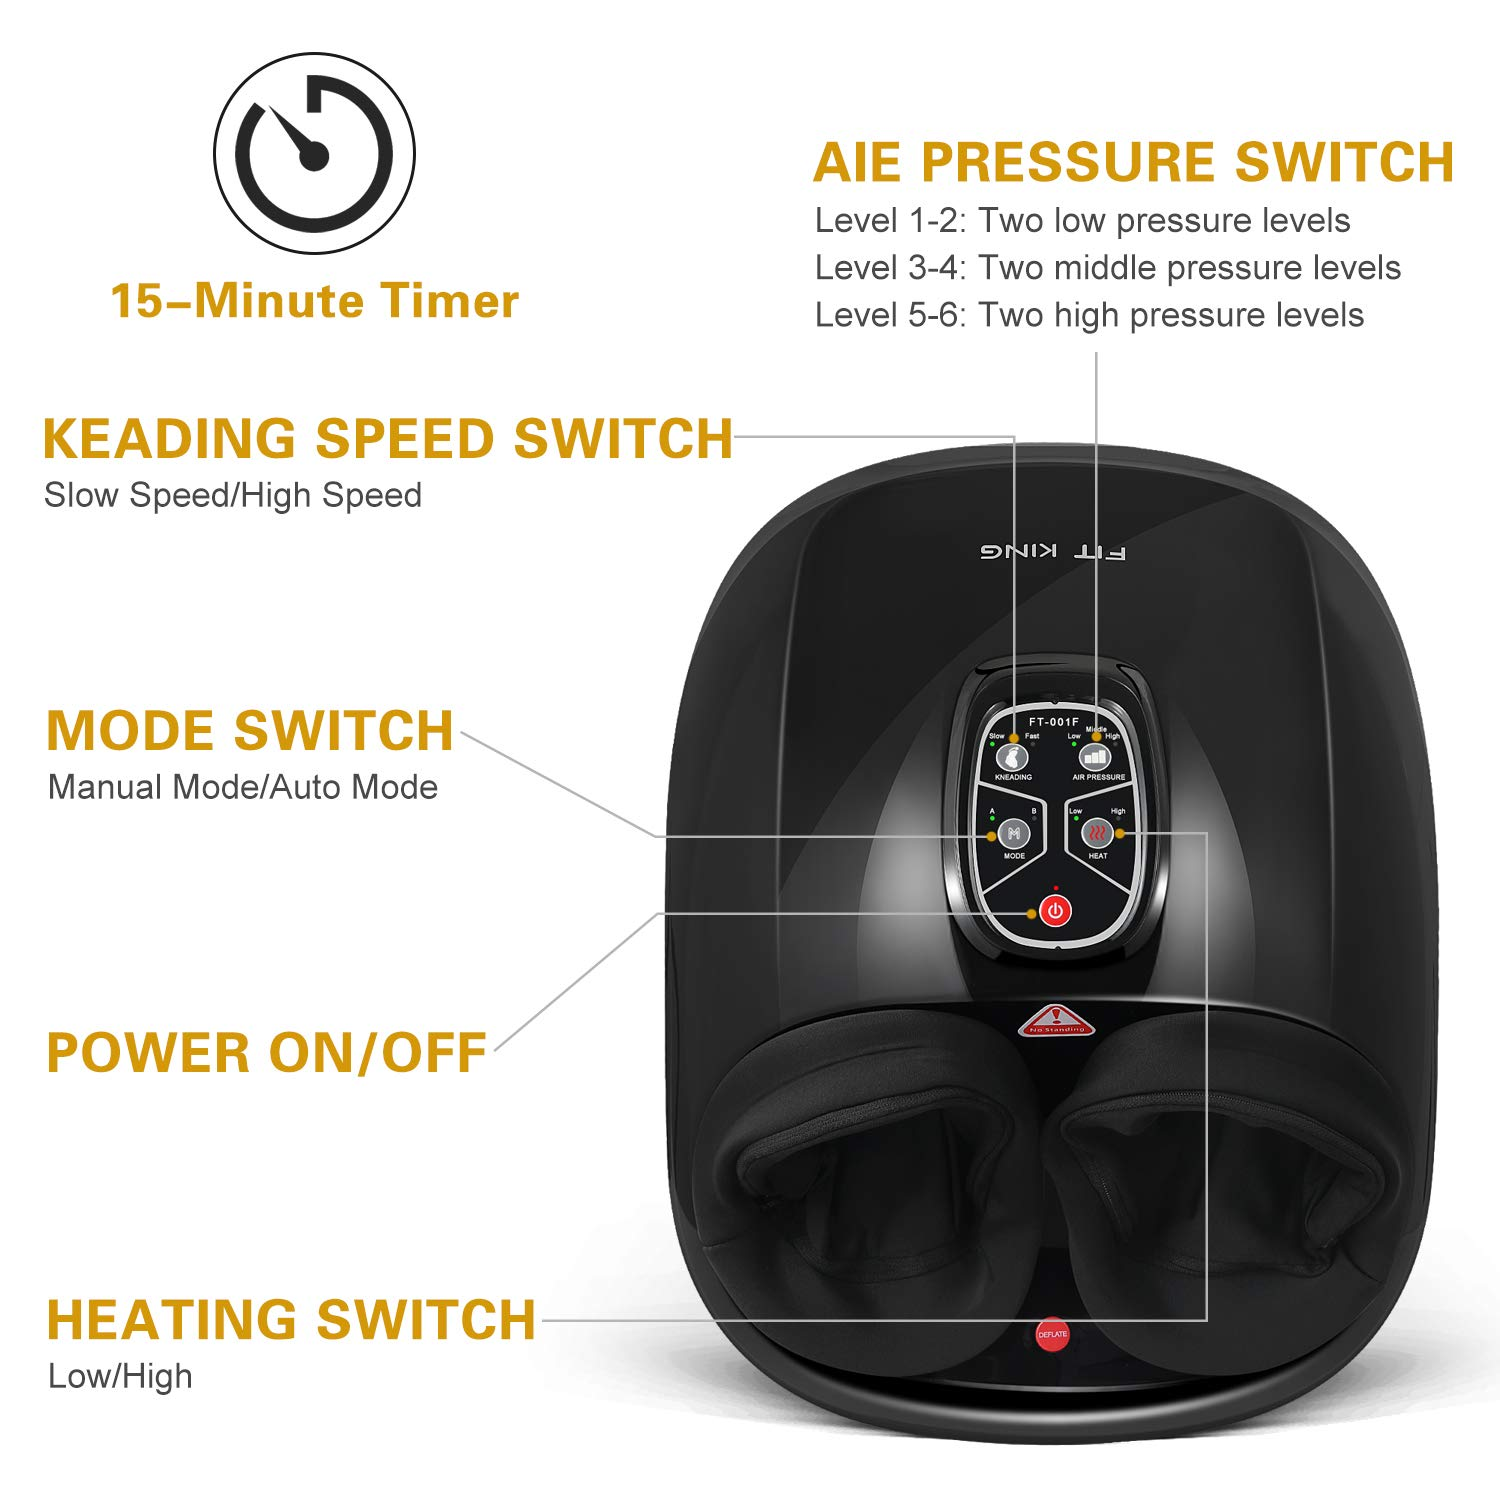 FIT KING Shiatsu Foot Massager Machine with Heat Deep Kneading Foot Reflexology Massager for Foot Relaxation Pain Relief FT-001F